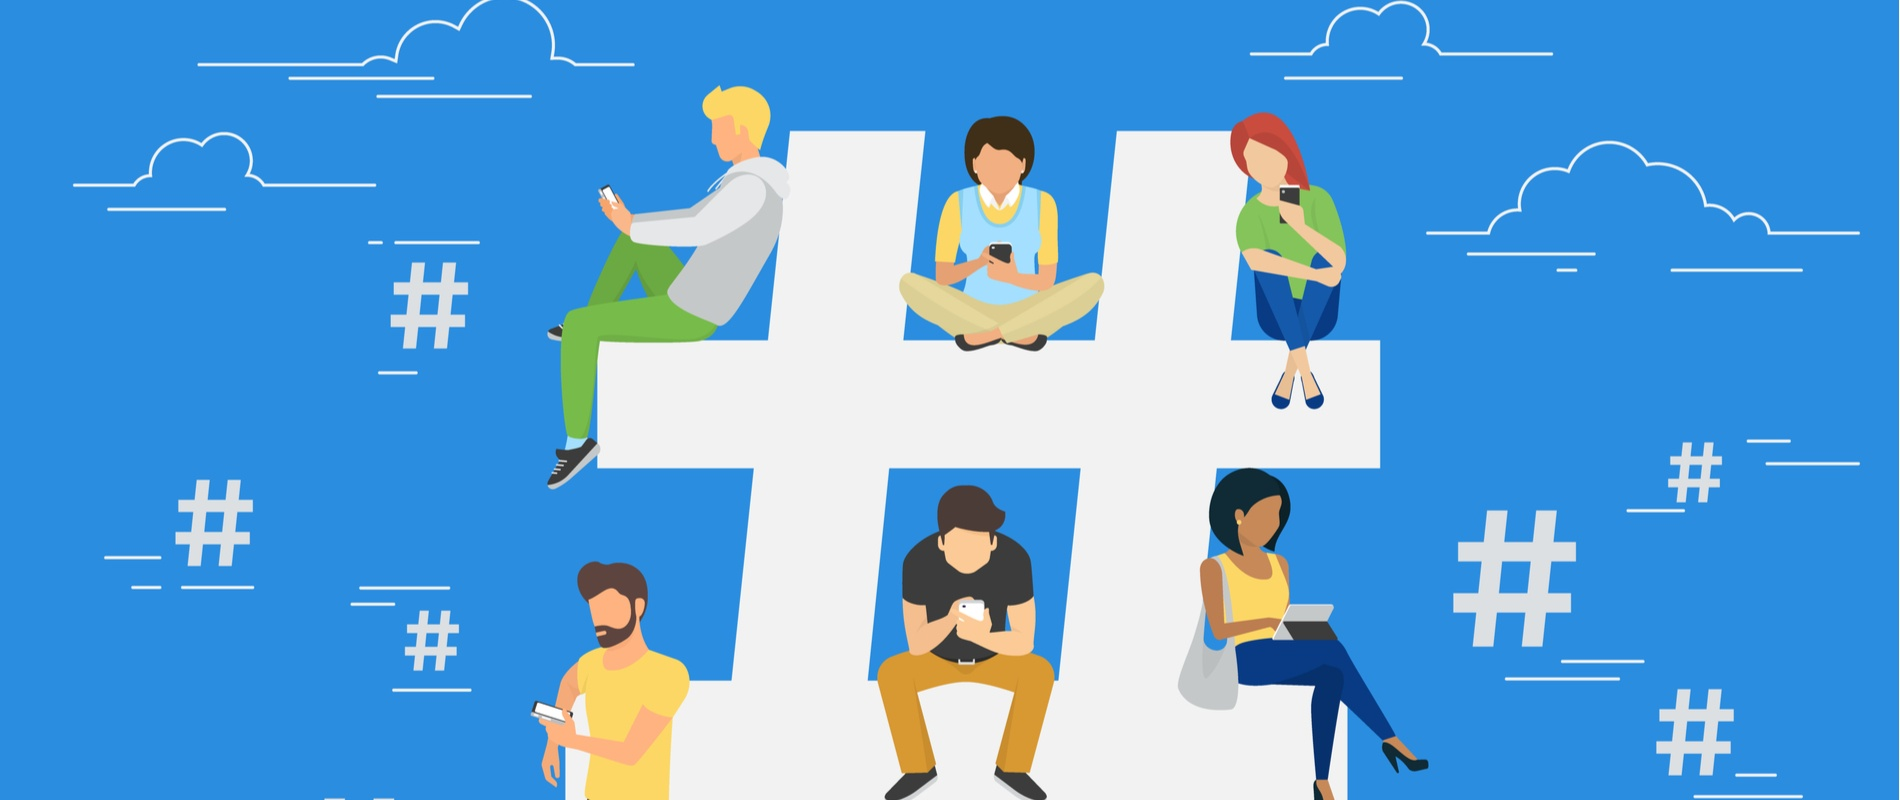 6 Essential Tips For Growing Your Social Media Presence